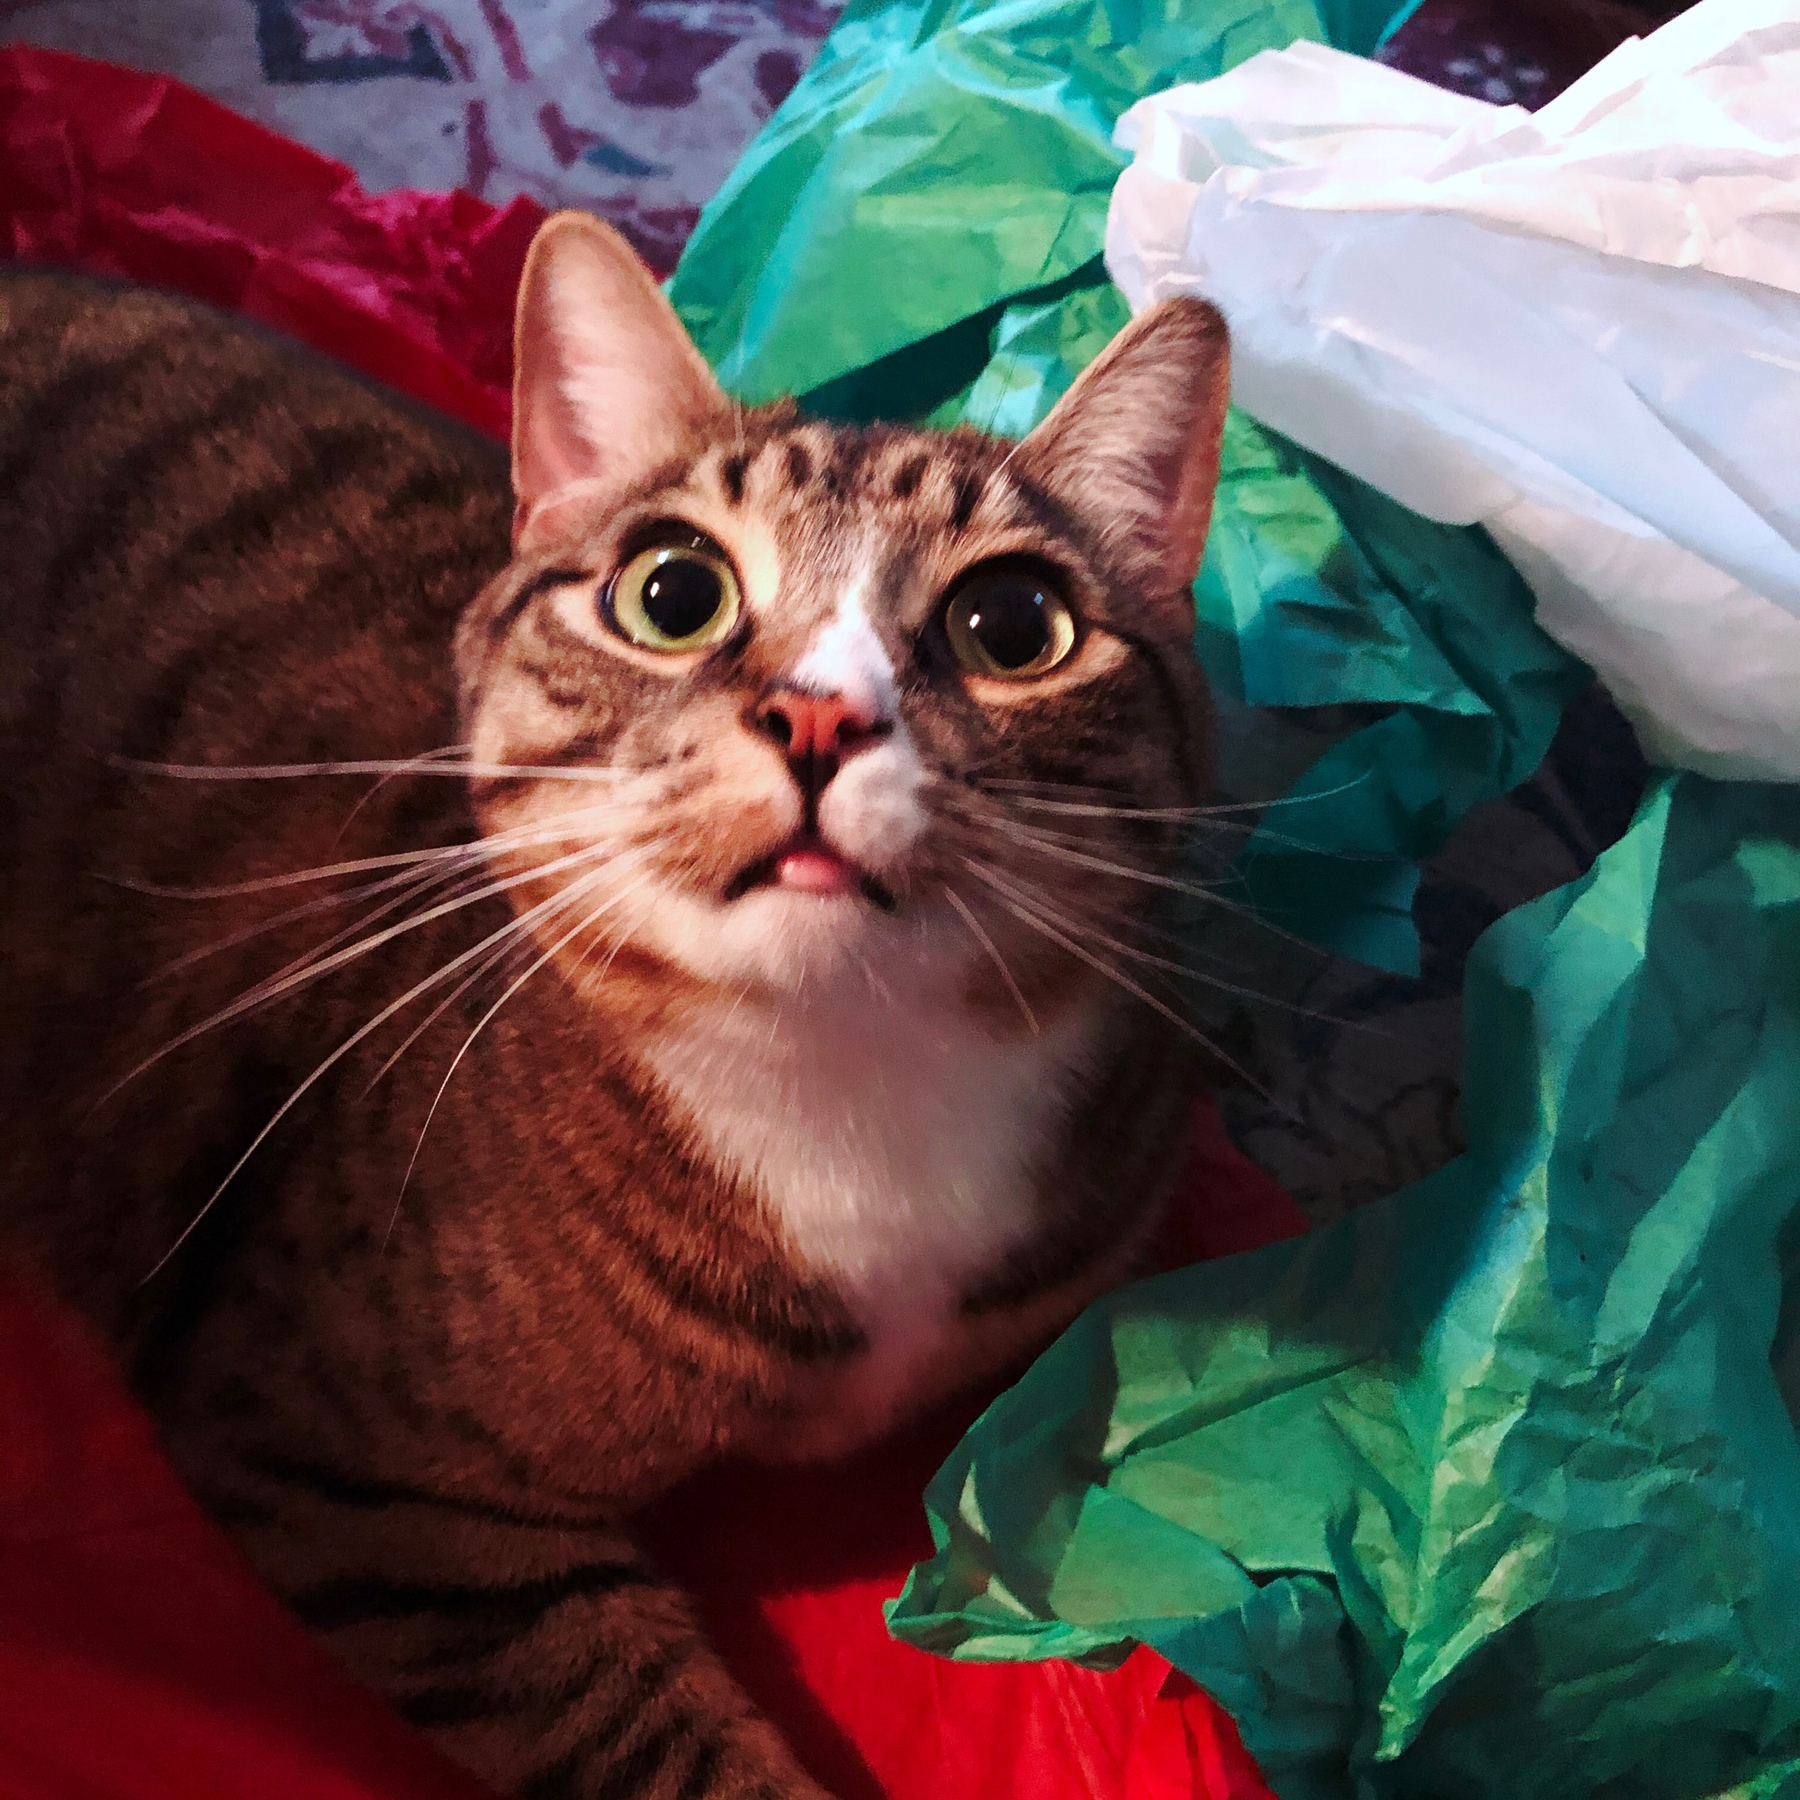 photo of a tabby kitten amidst red, white, and green tissue paper